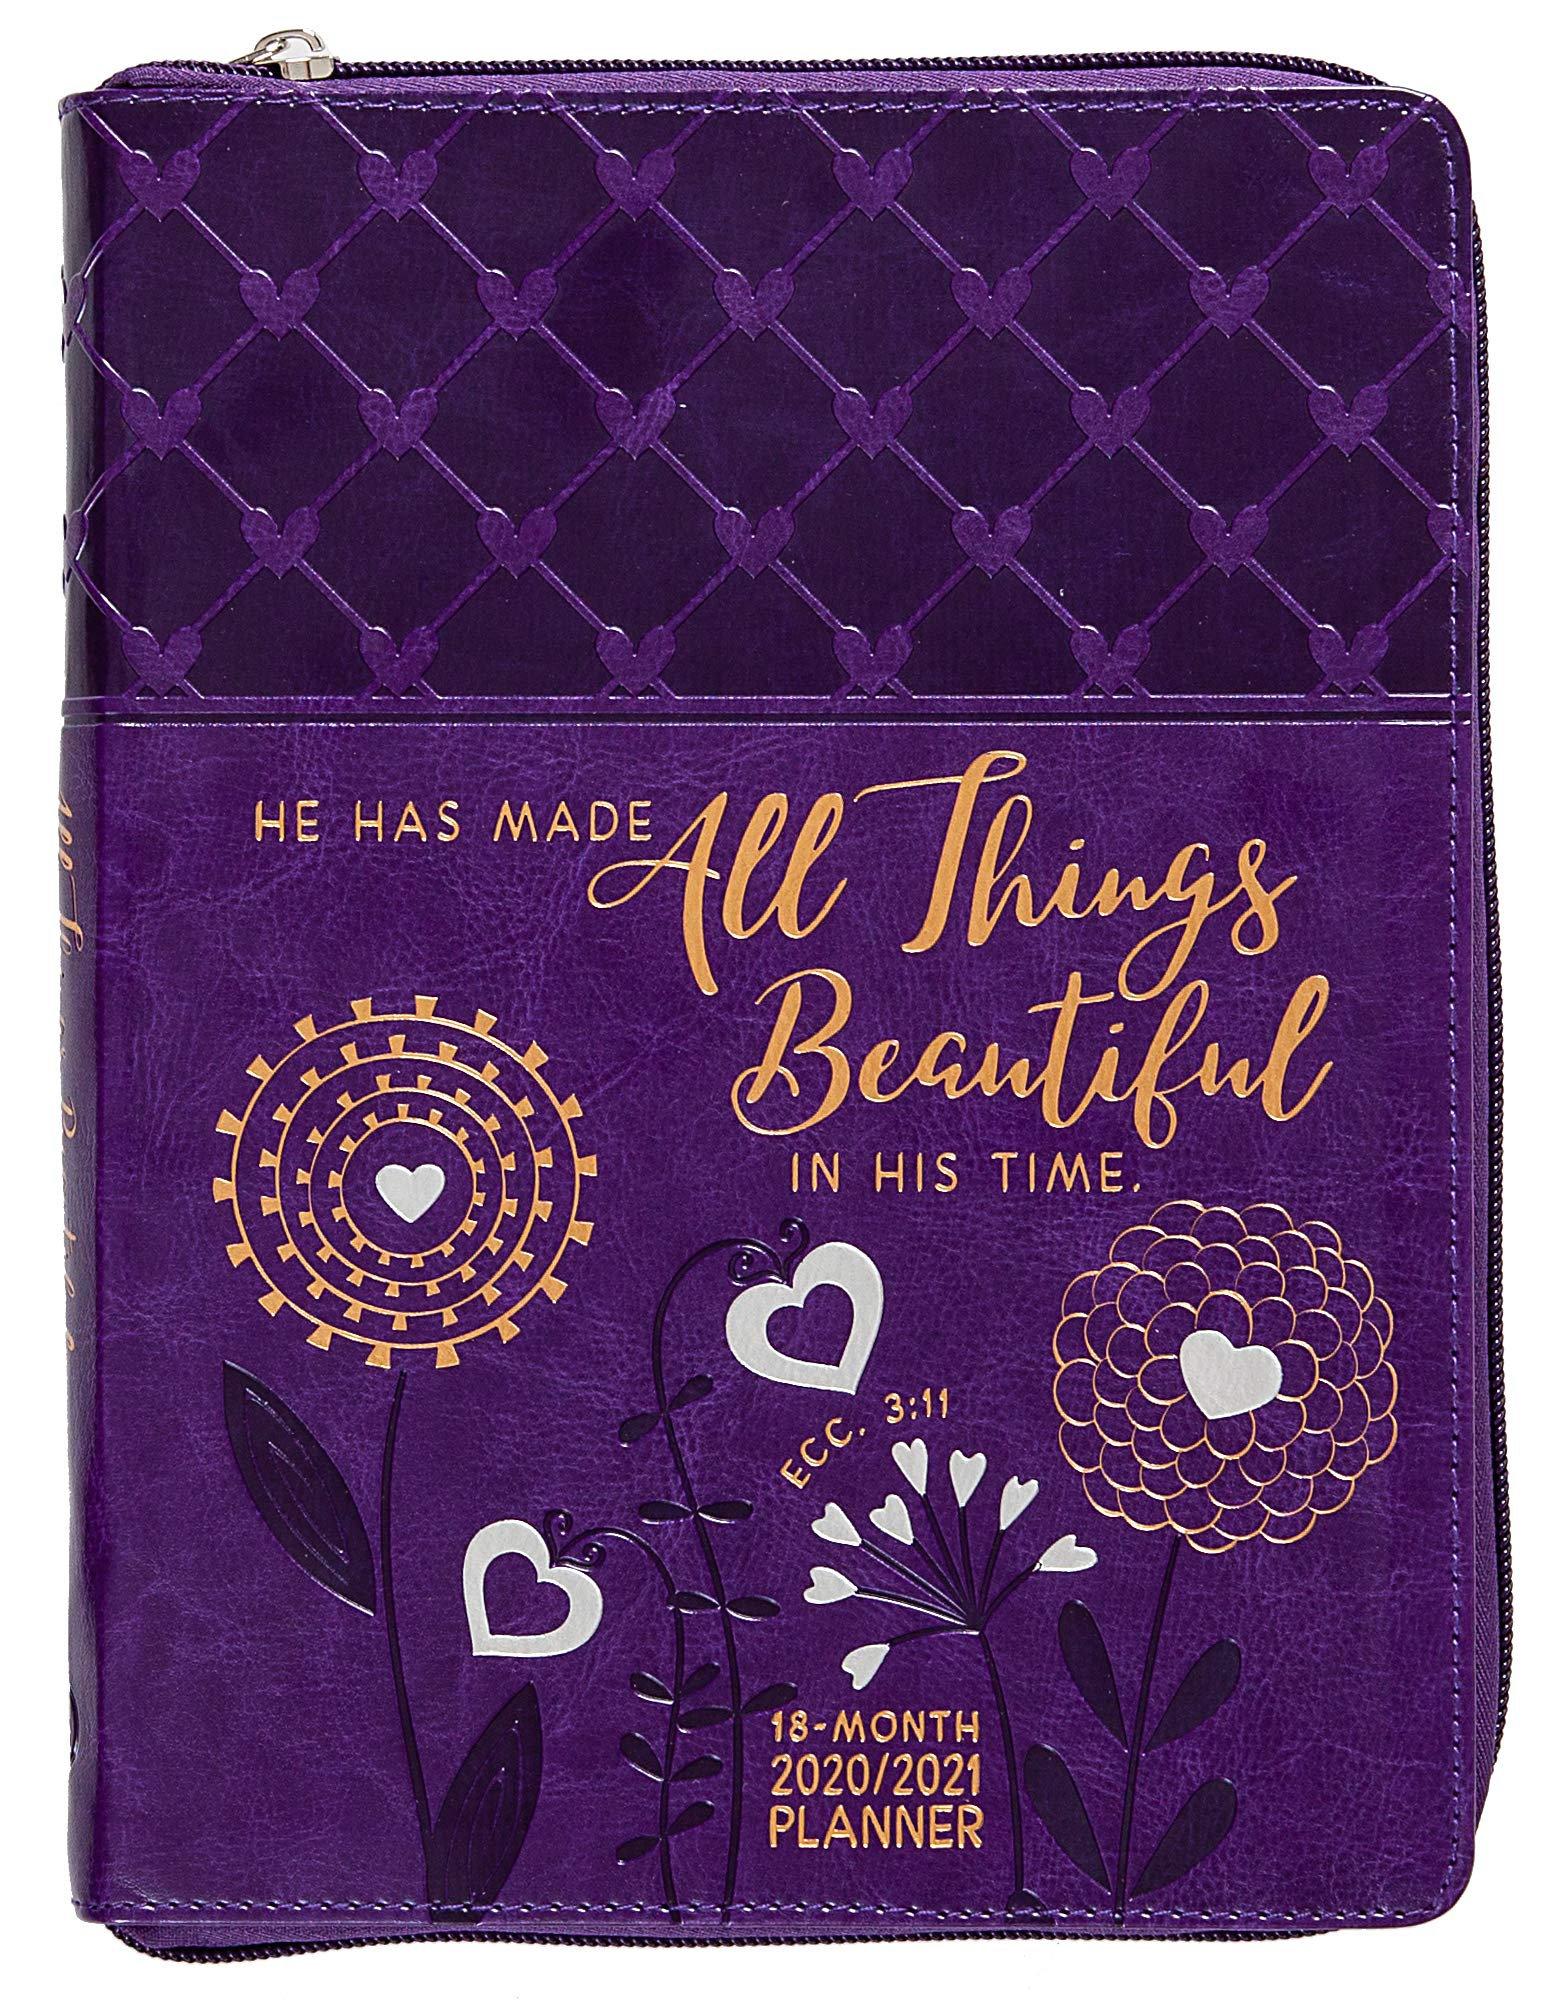 2021 All Things Beautiful 18-Month Planner with Zipper